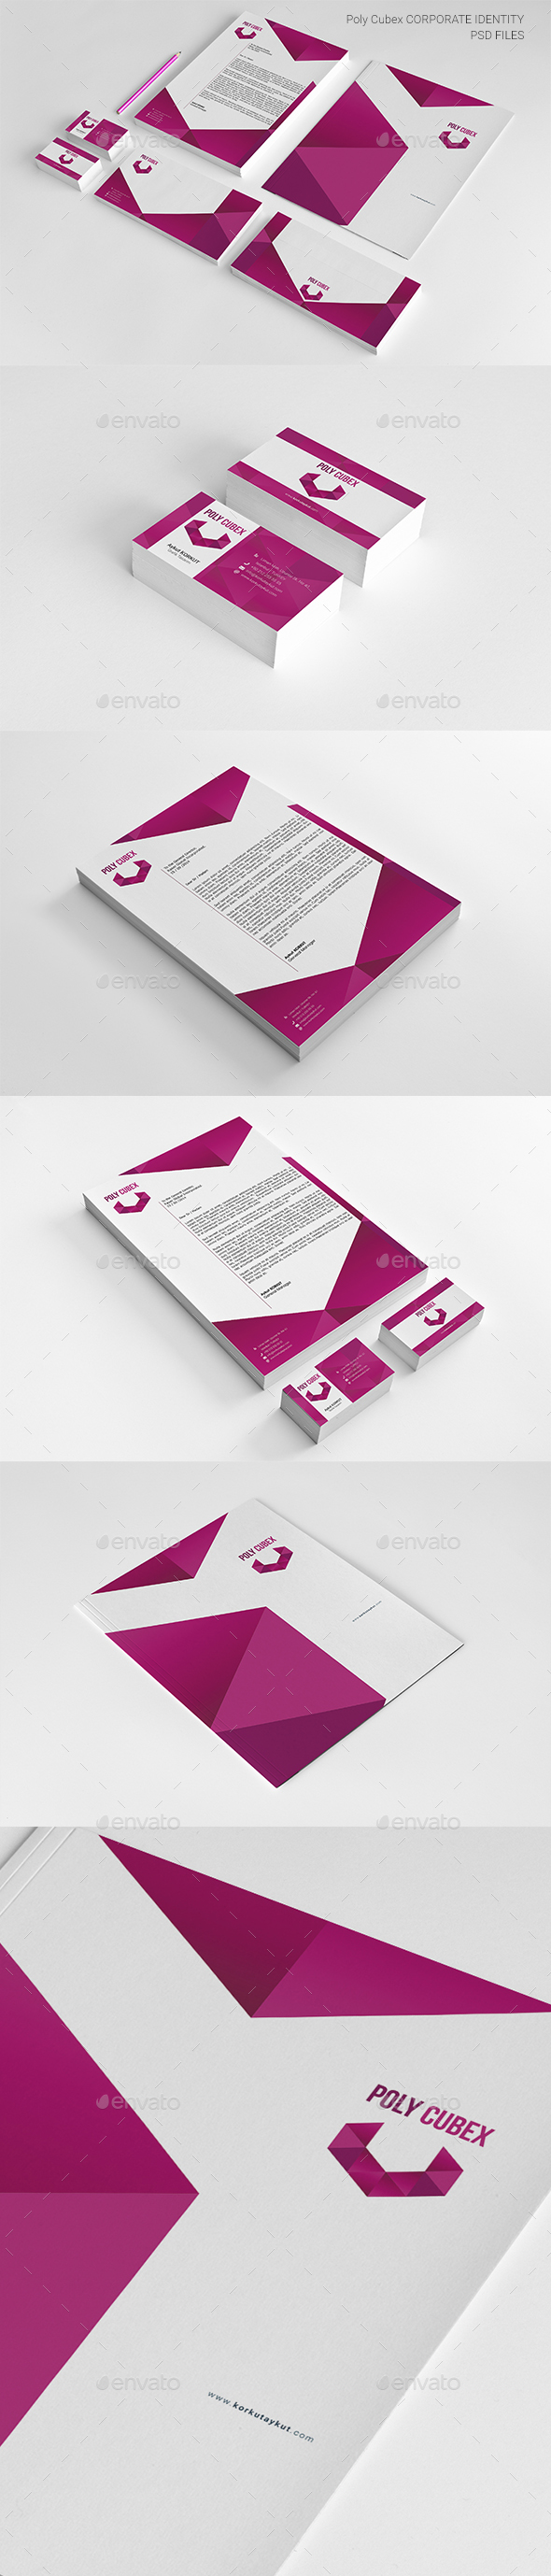 Poly Cubex Corporate Identity Package - Stationery Print Templates